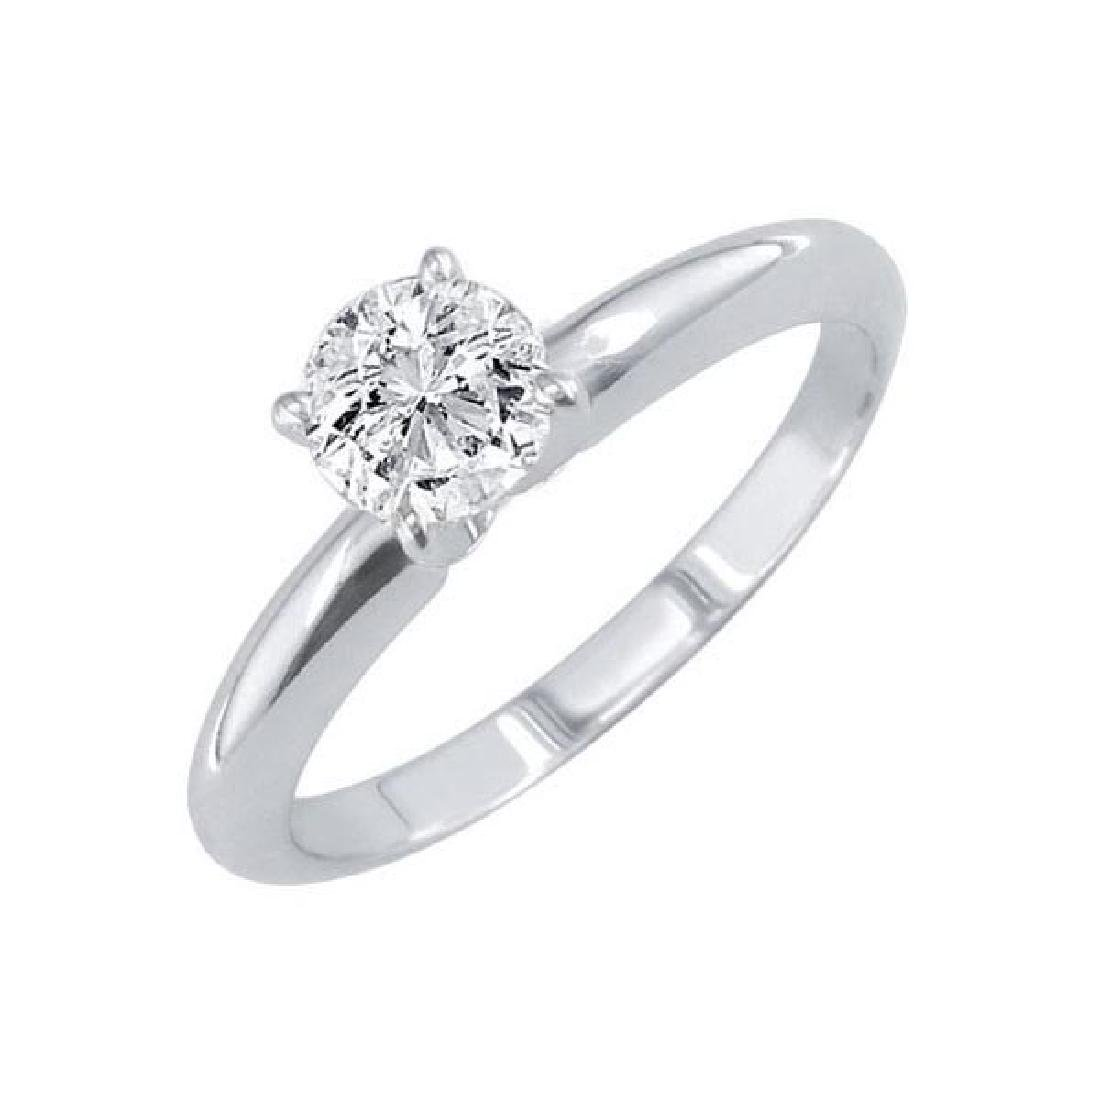 Certified 1.22 CTW Round Diamond Solitaire 14k Ring G/S